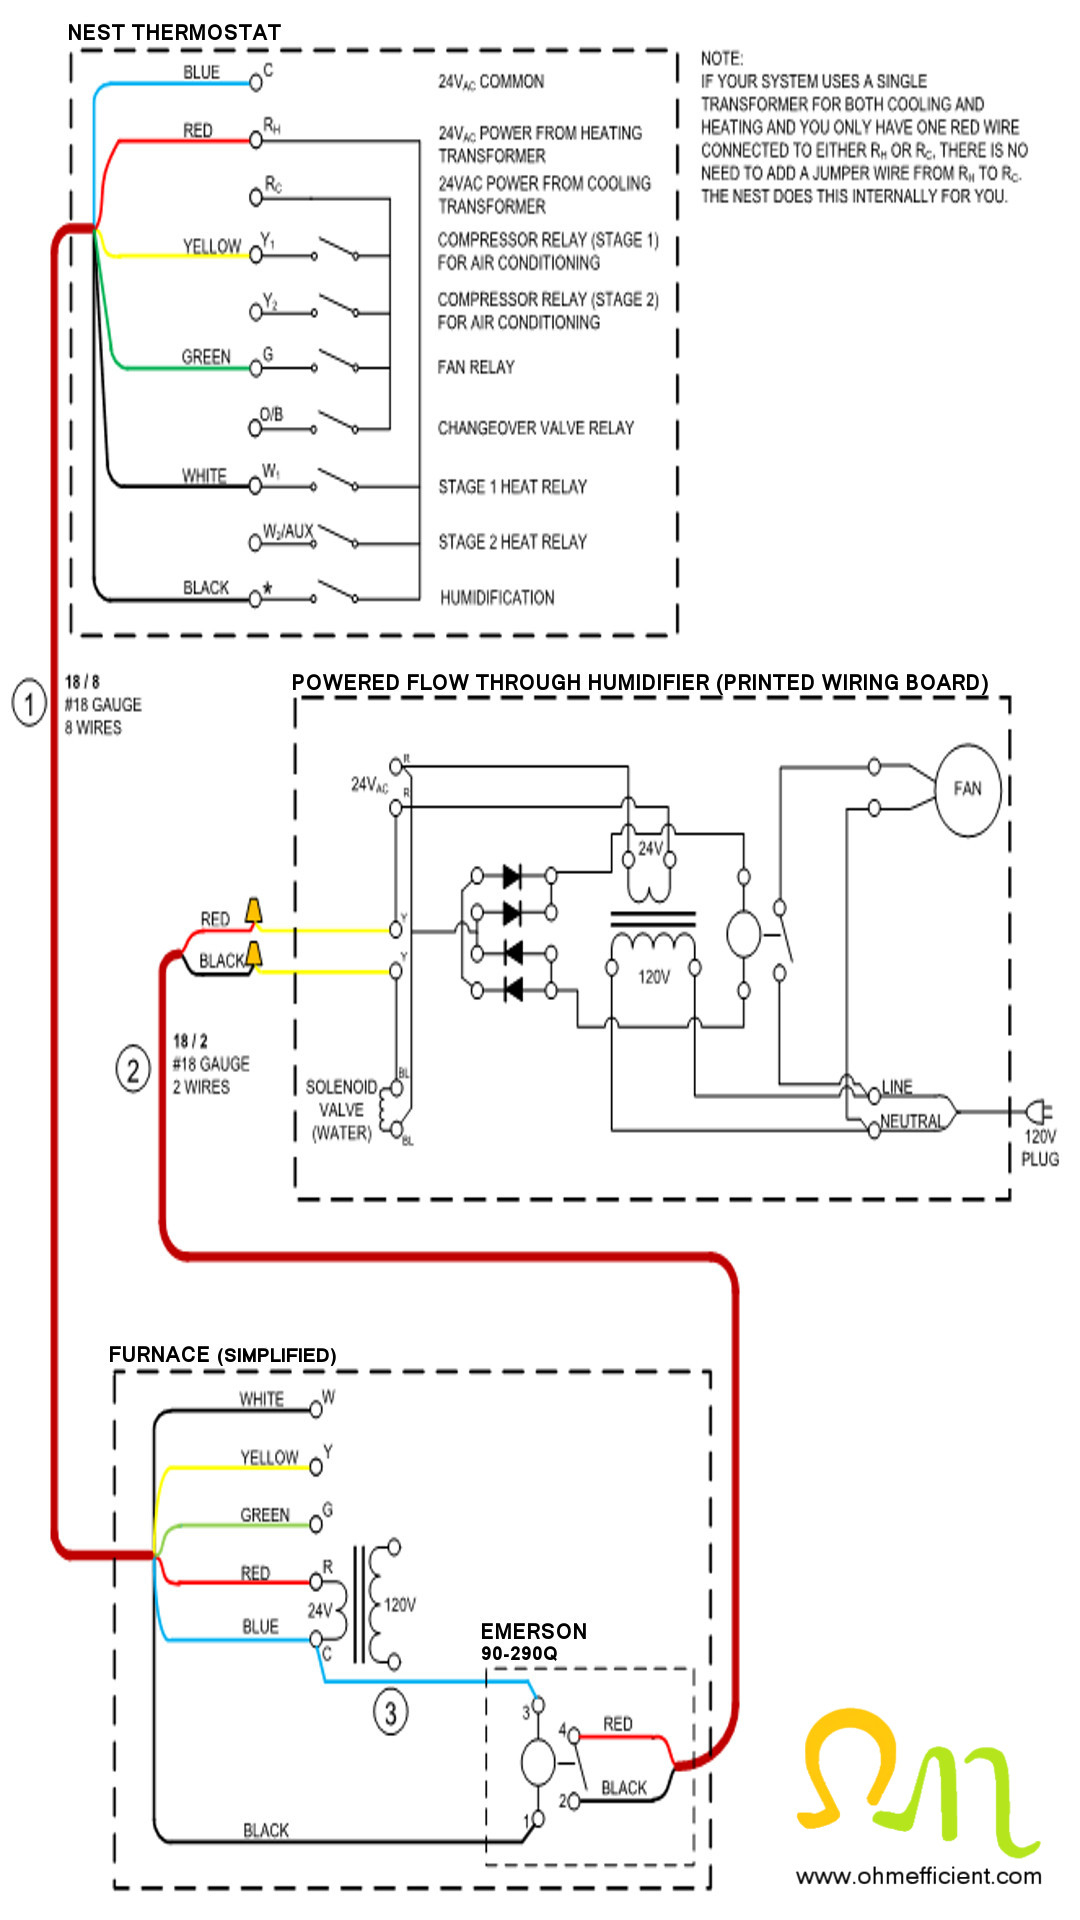 The Nest Thermostat Wiring Diagram | Wiring Diagram - Nest Thermostat Wiring Diagram Heat And Air Conditioner